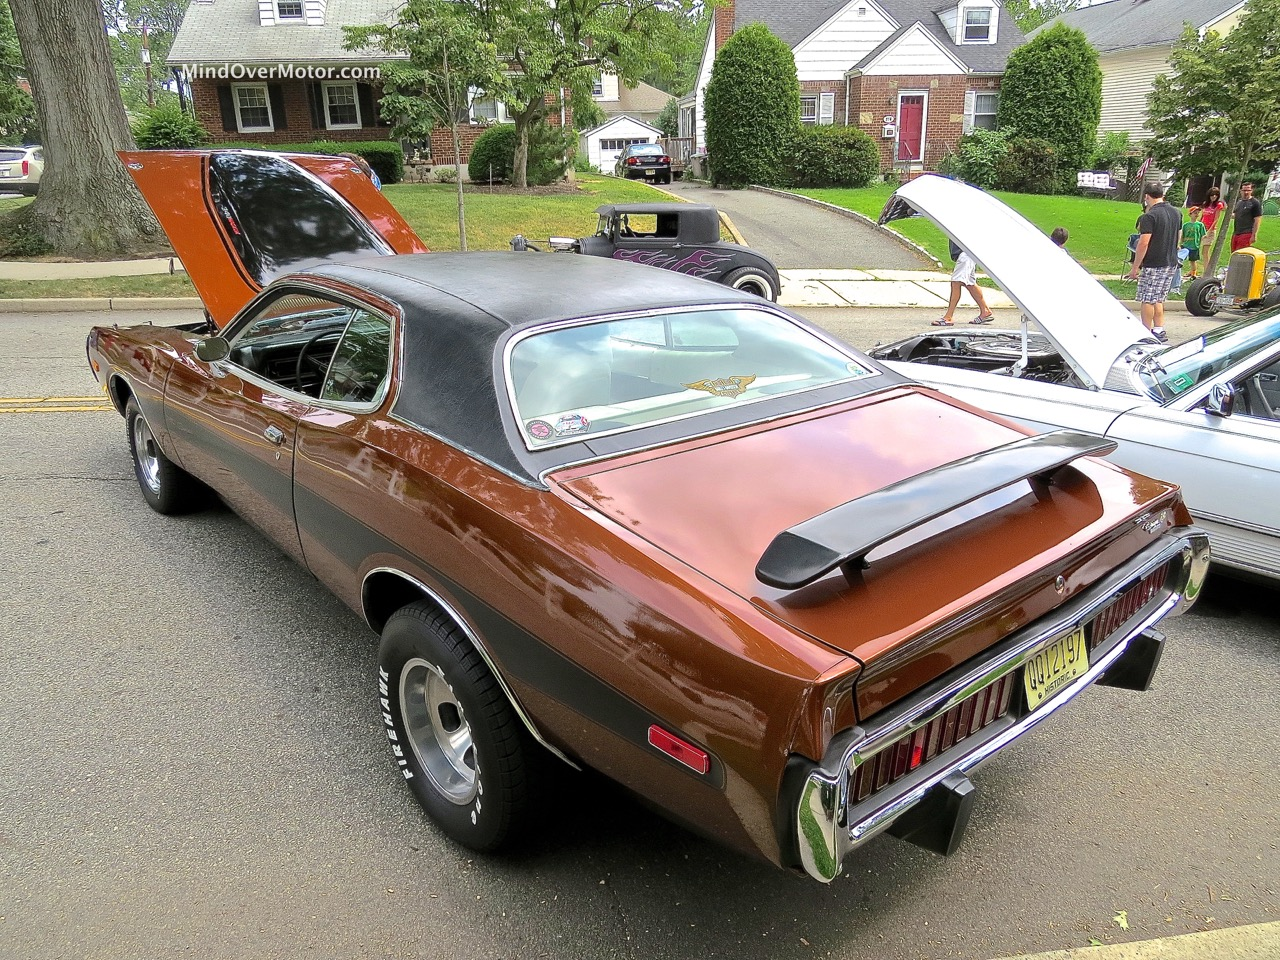 1974 Dodge Charger Rear